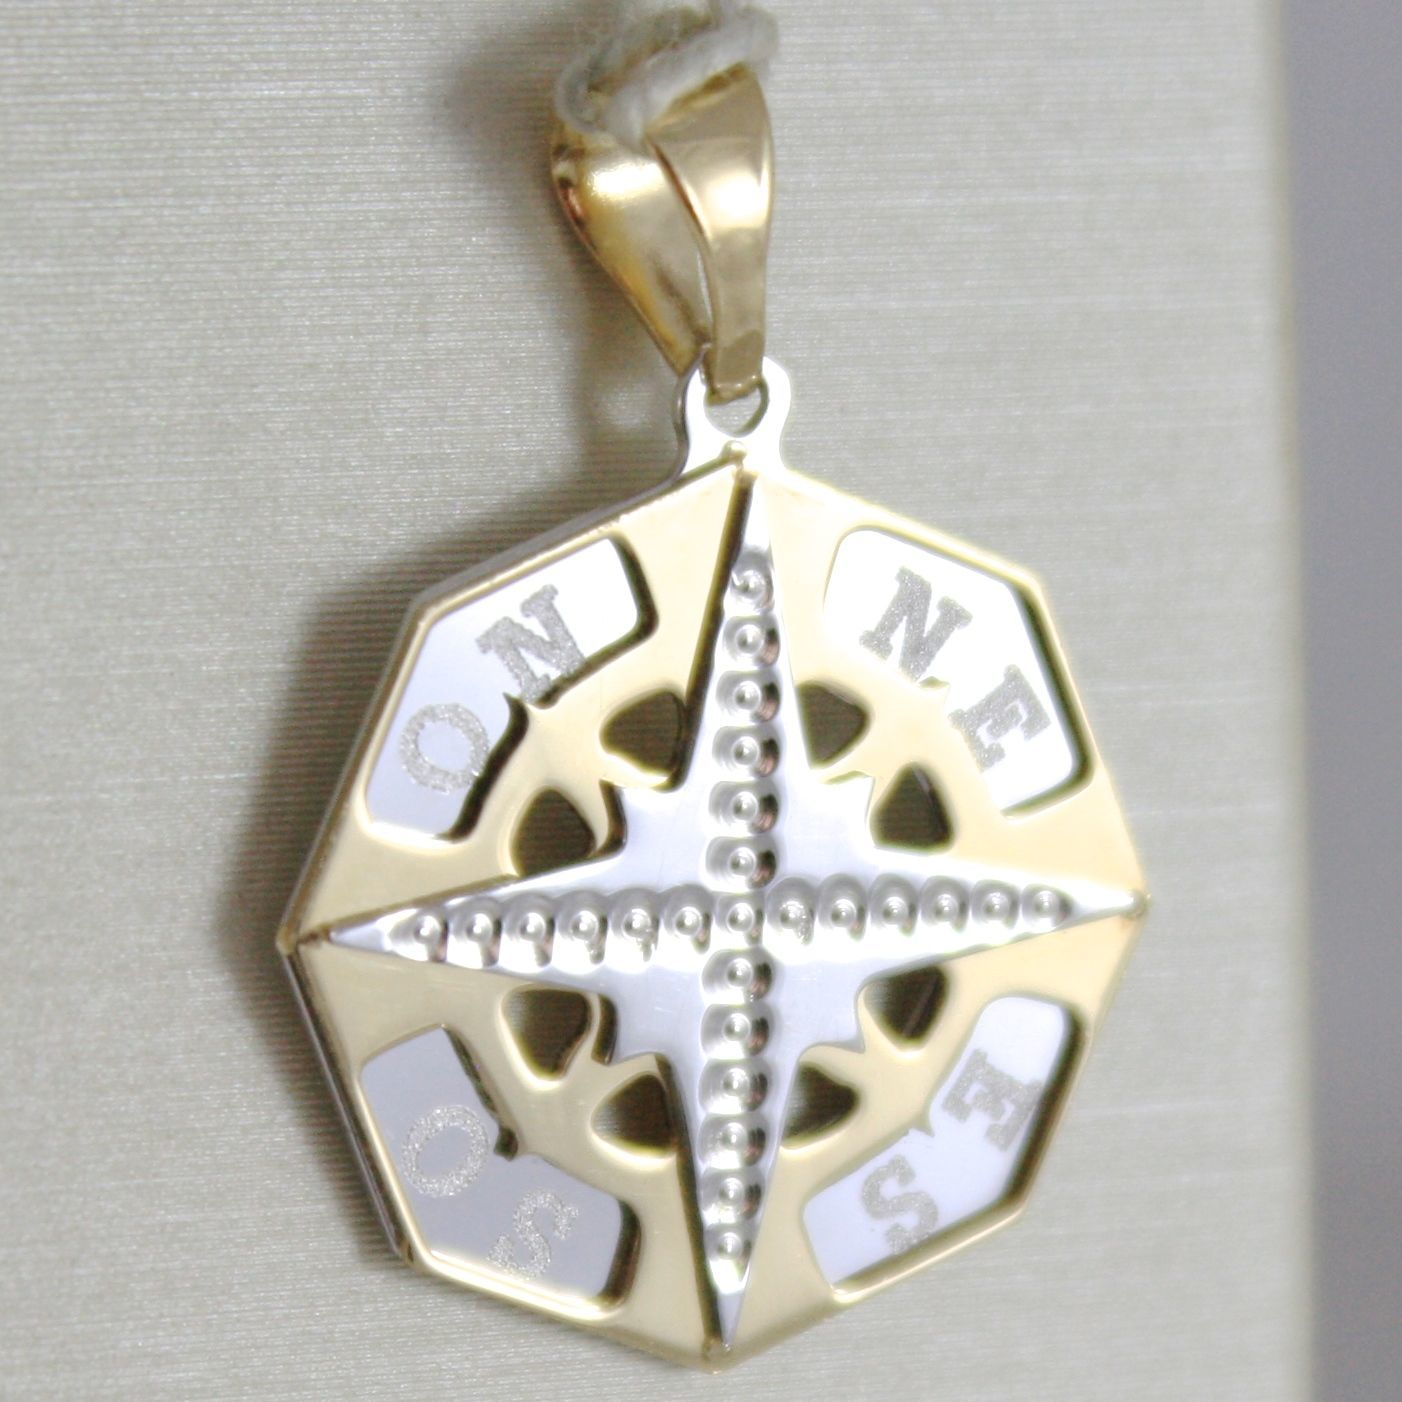 YELLOW GOLD PENDANT WHITE 750 18K, PINK WIND ROSE TWENTY, COMPASS, MADE IN ITALY